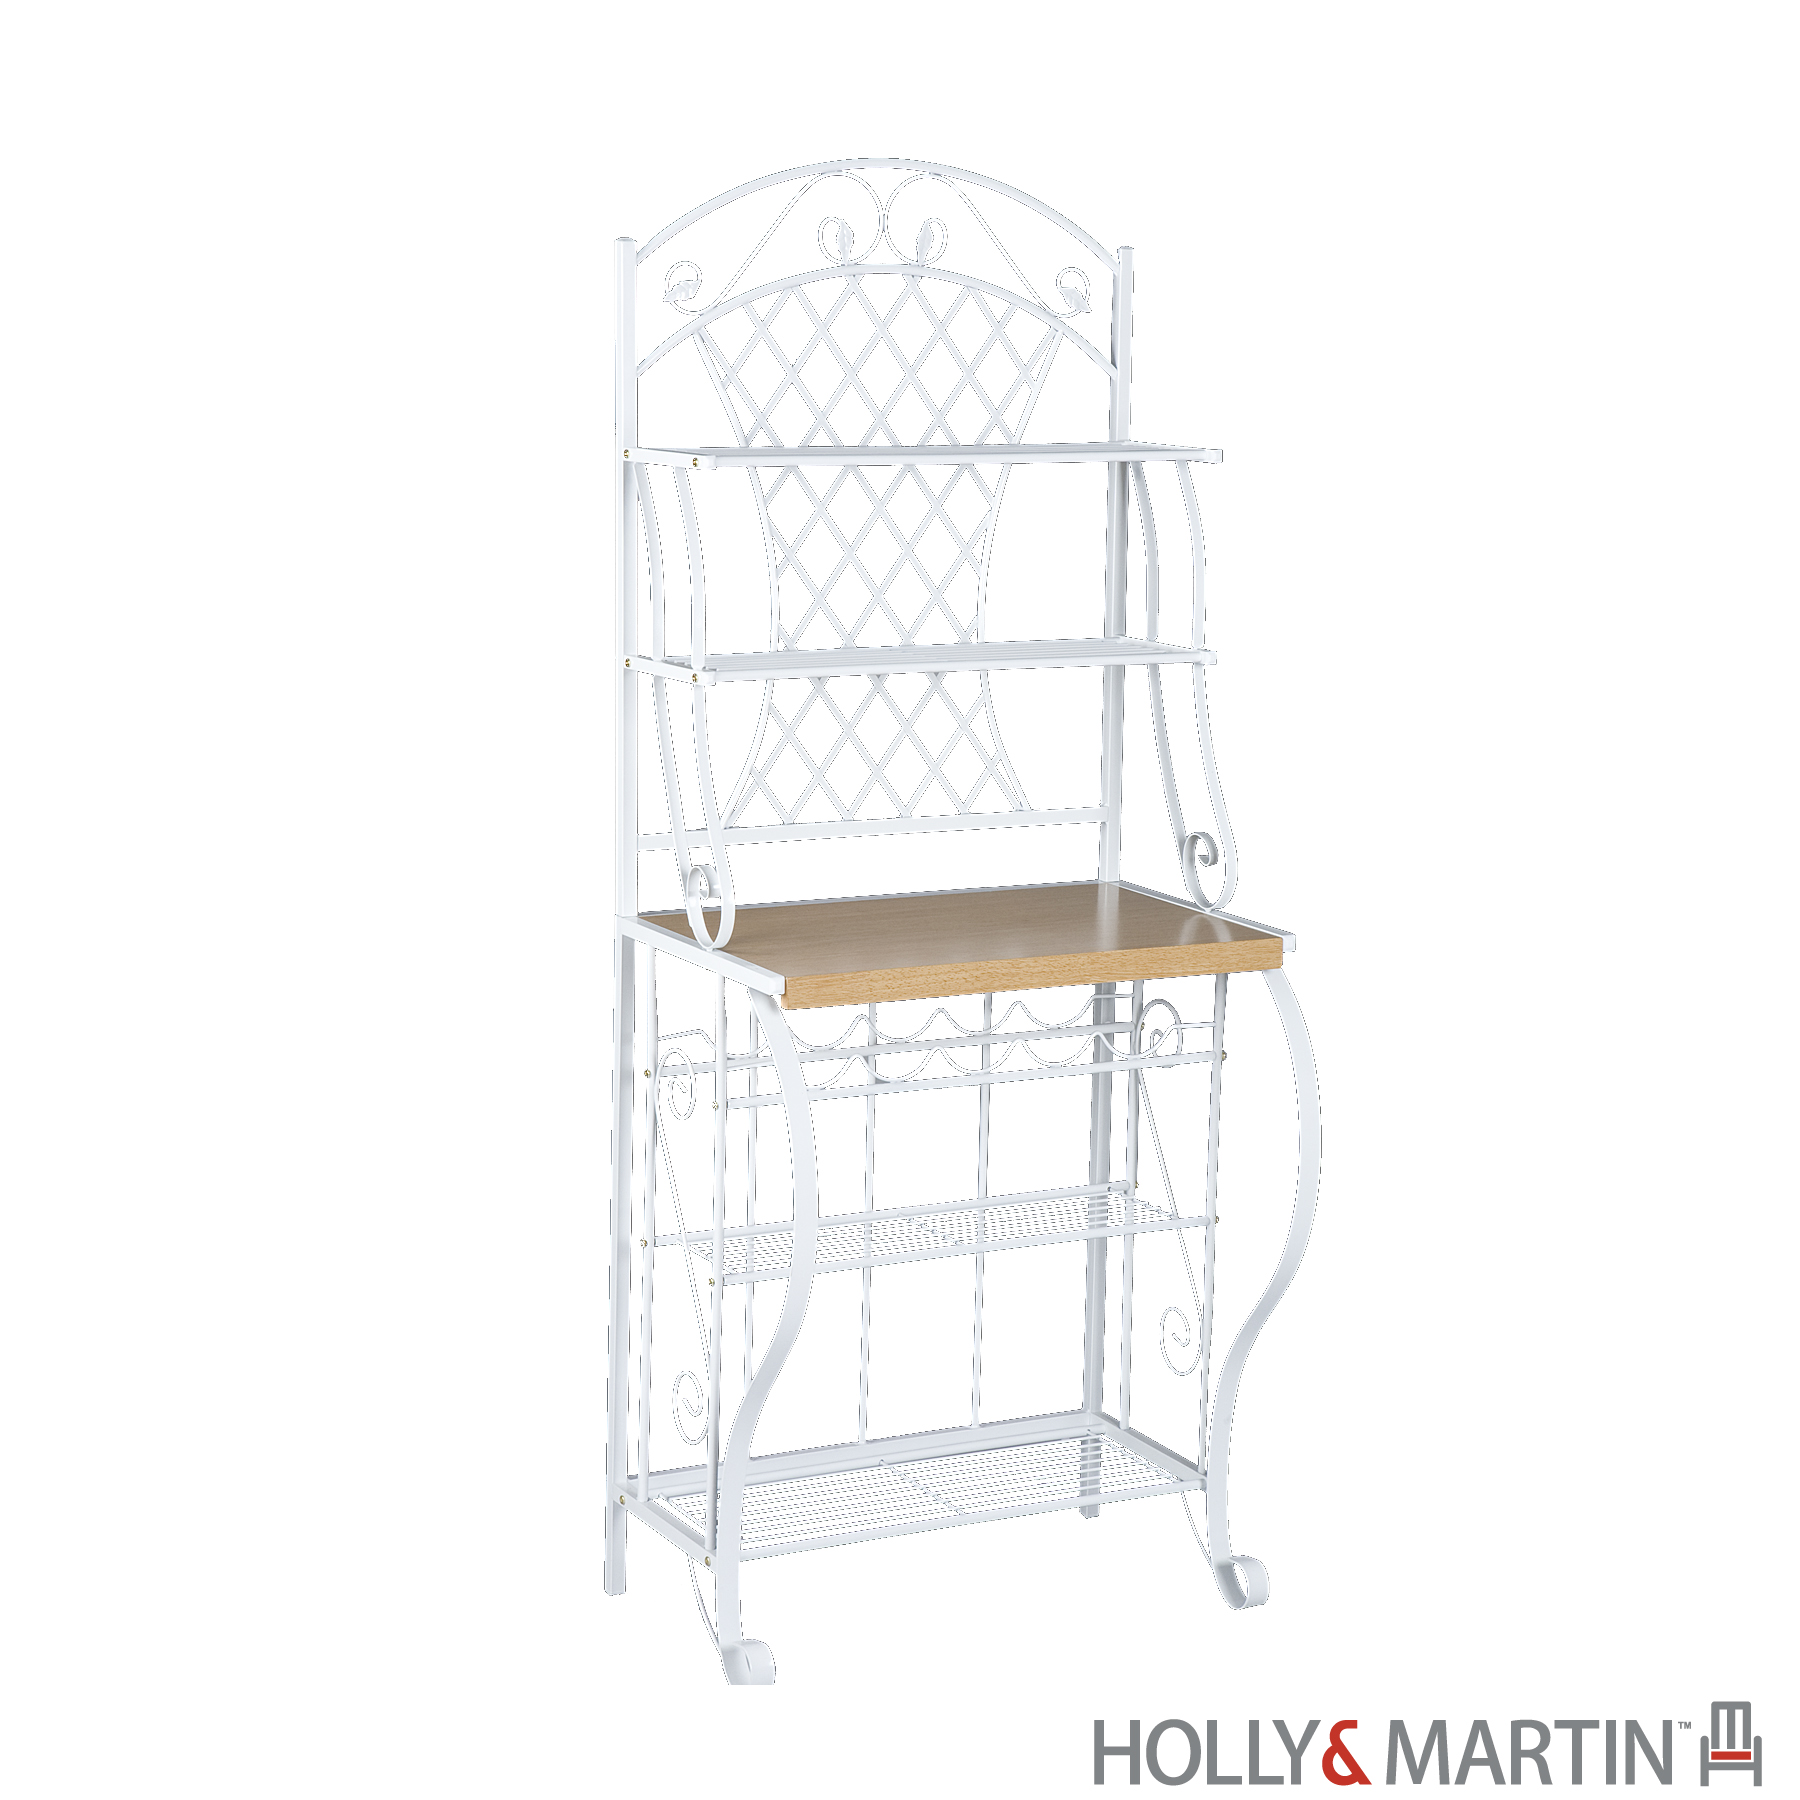 Holly & Martin's Atlanta Baker's Hutch with 5-Bottle Wine Rack - 68